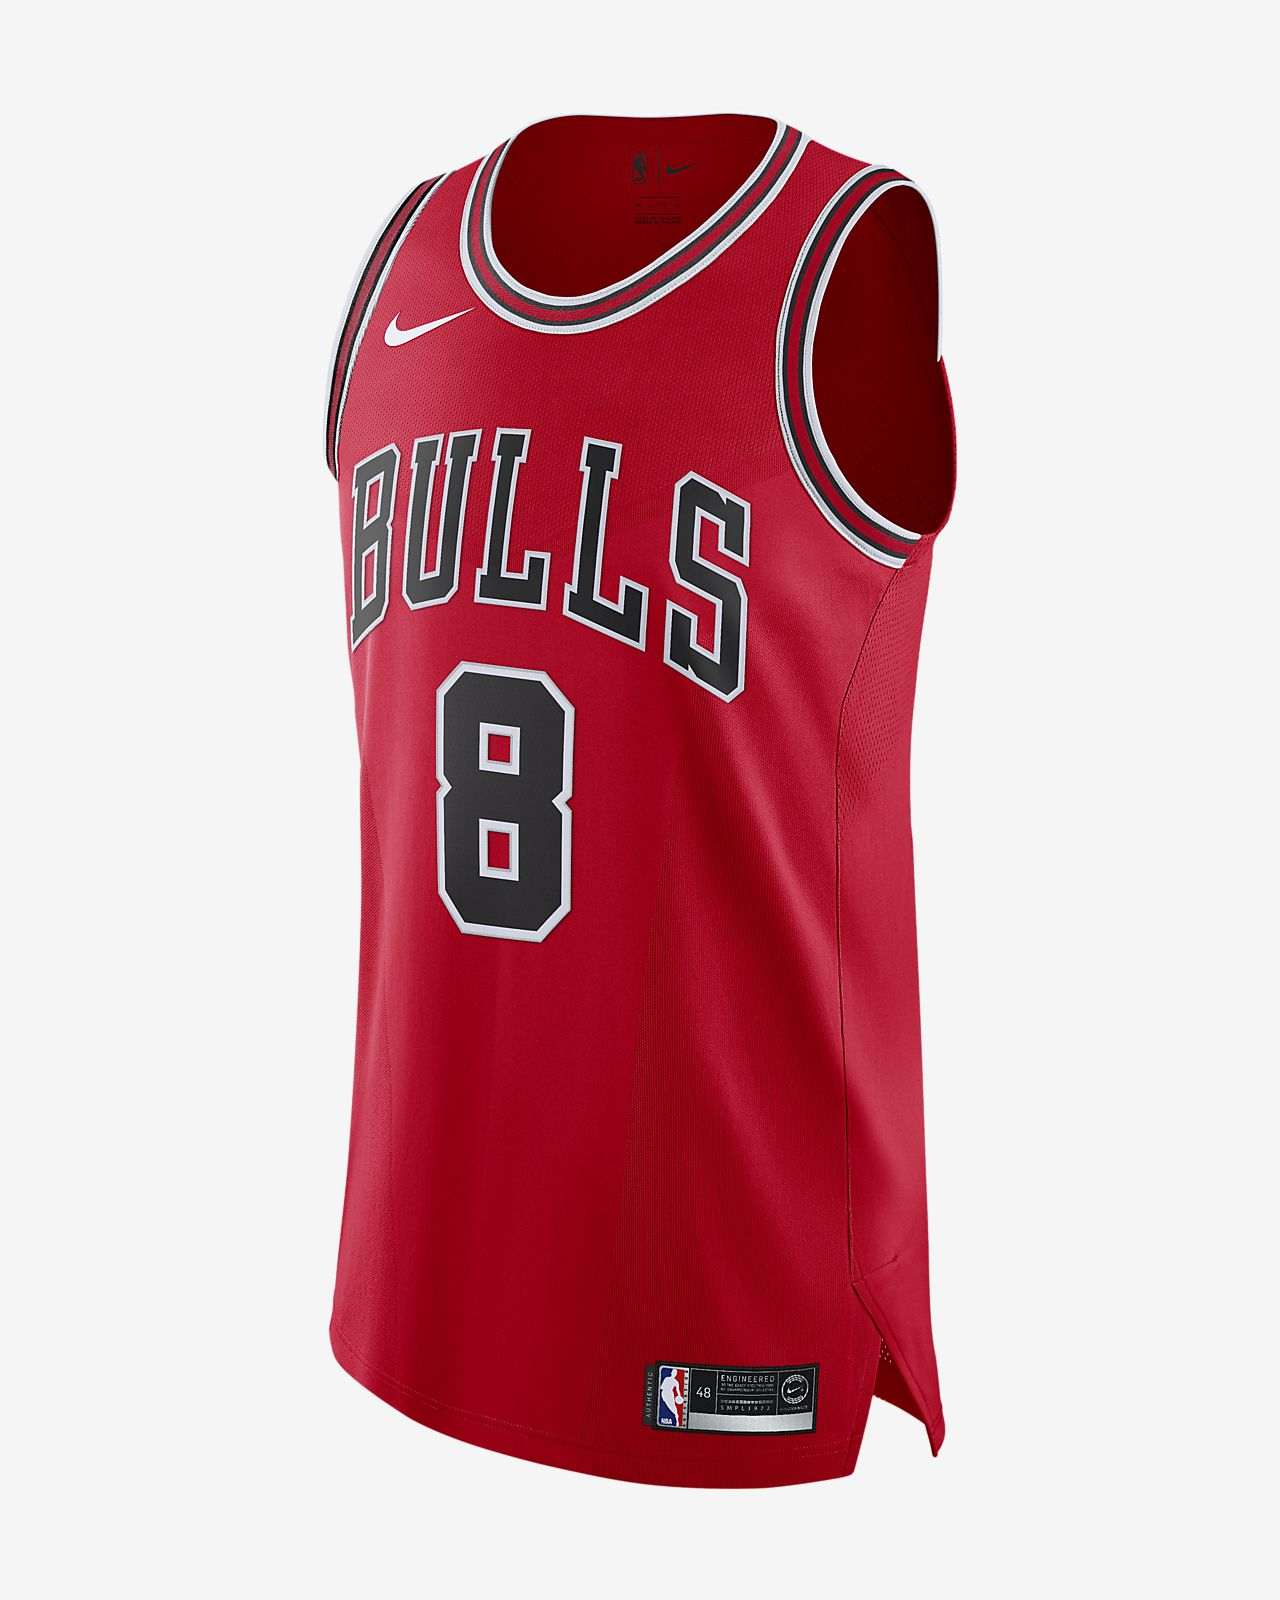 Men s Nike NBA Connected Jersey. Zach LaVine Icon Edition Authentic  (Chicago Bulls) 5386ea4ee